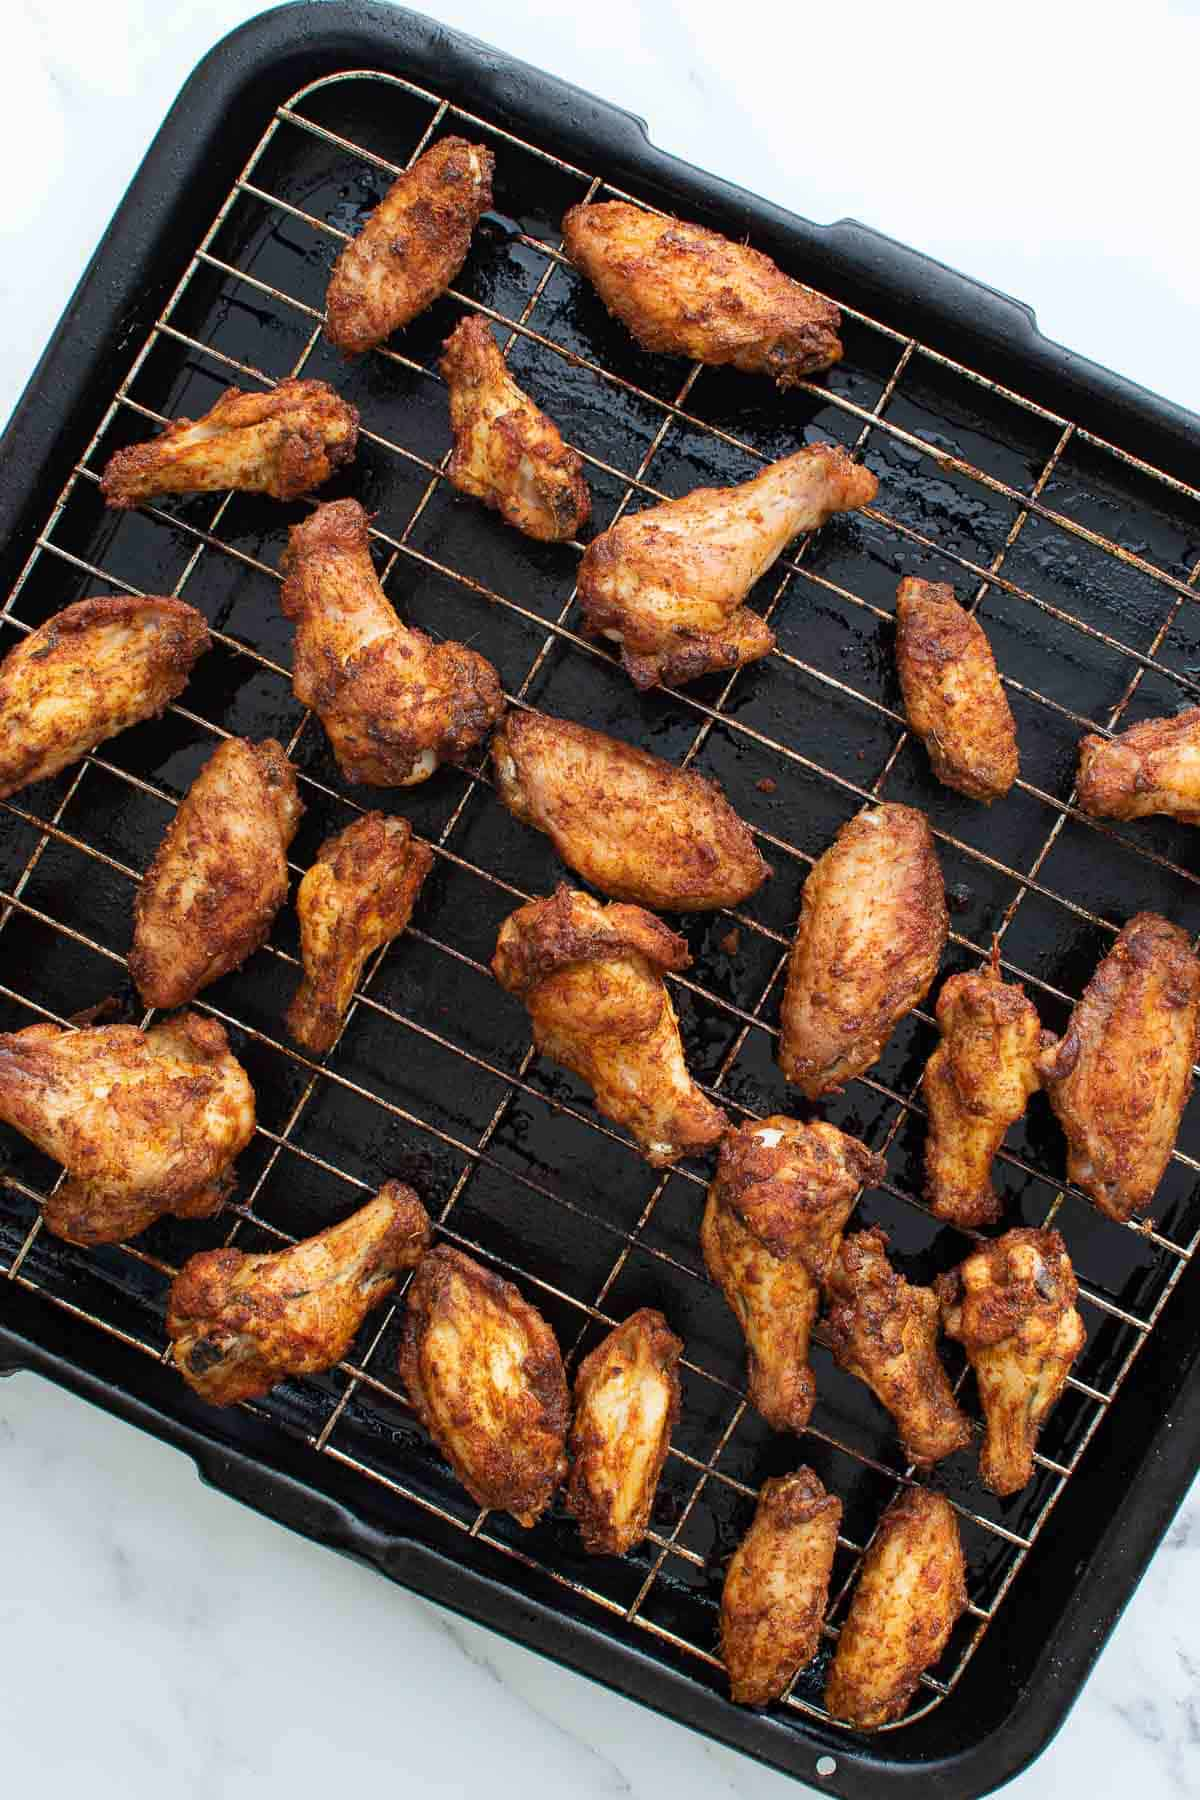 Chicken wings on a wire rack.